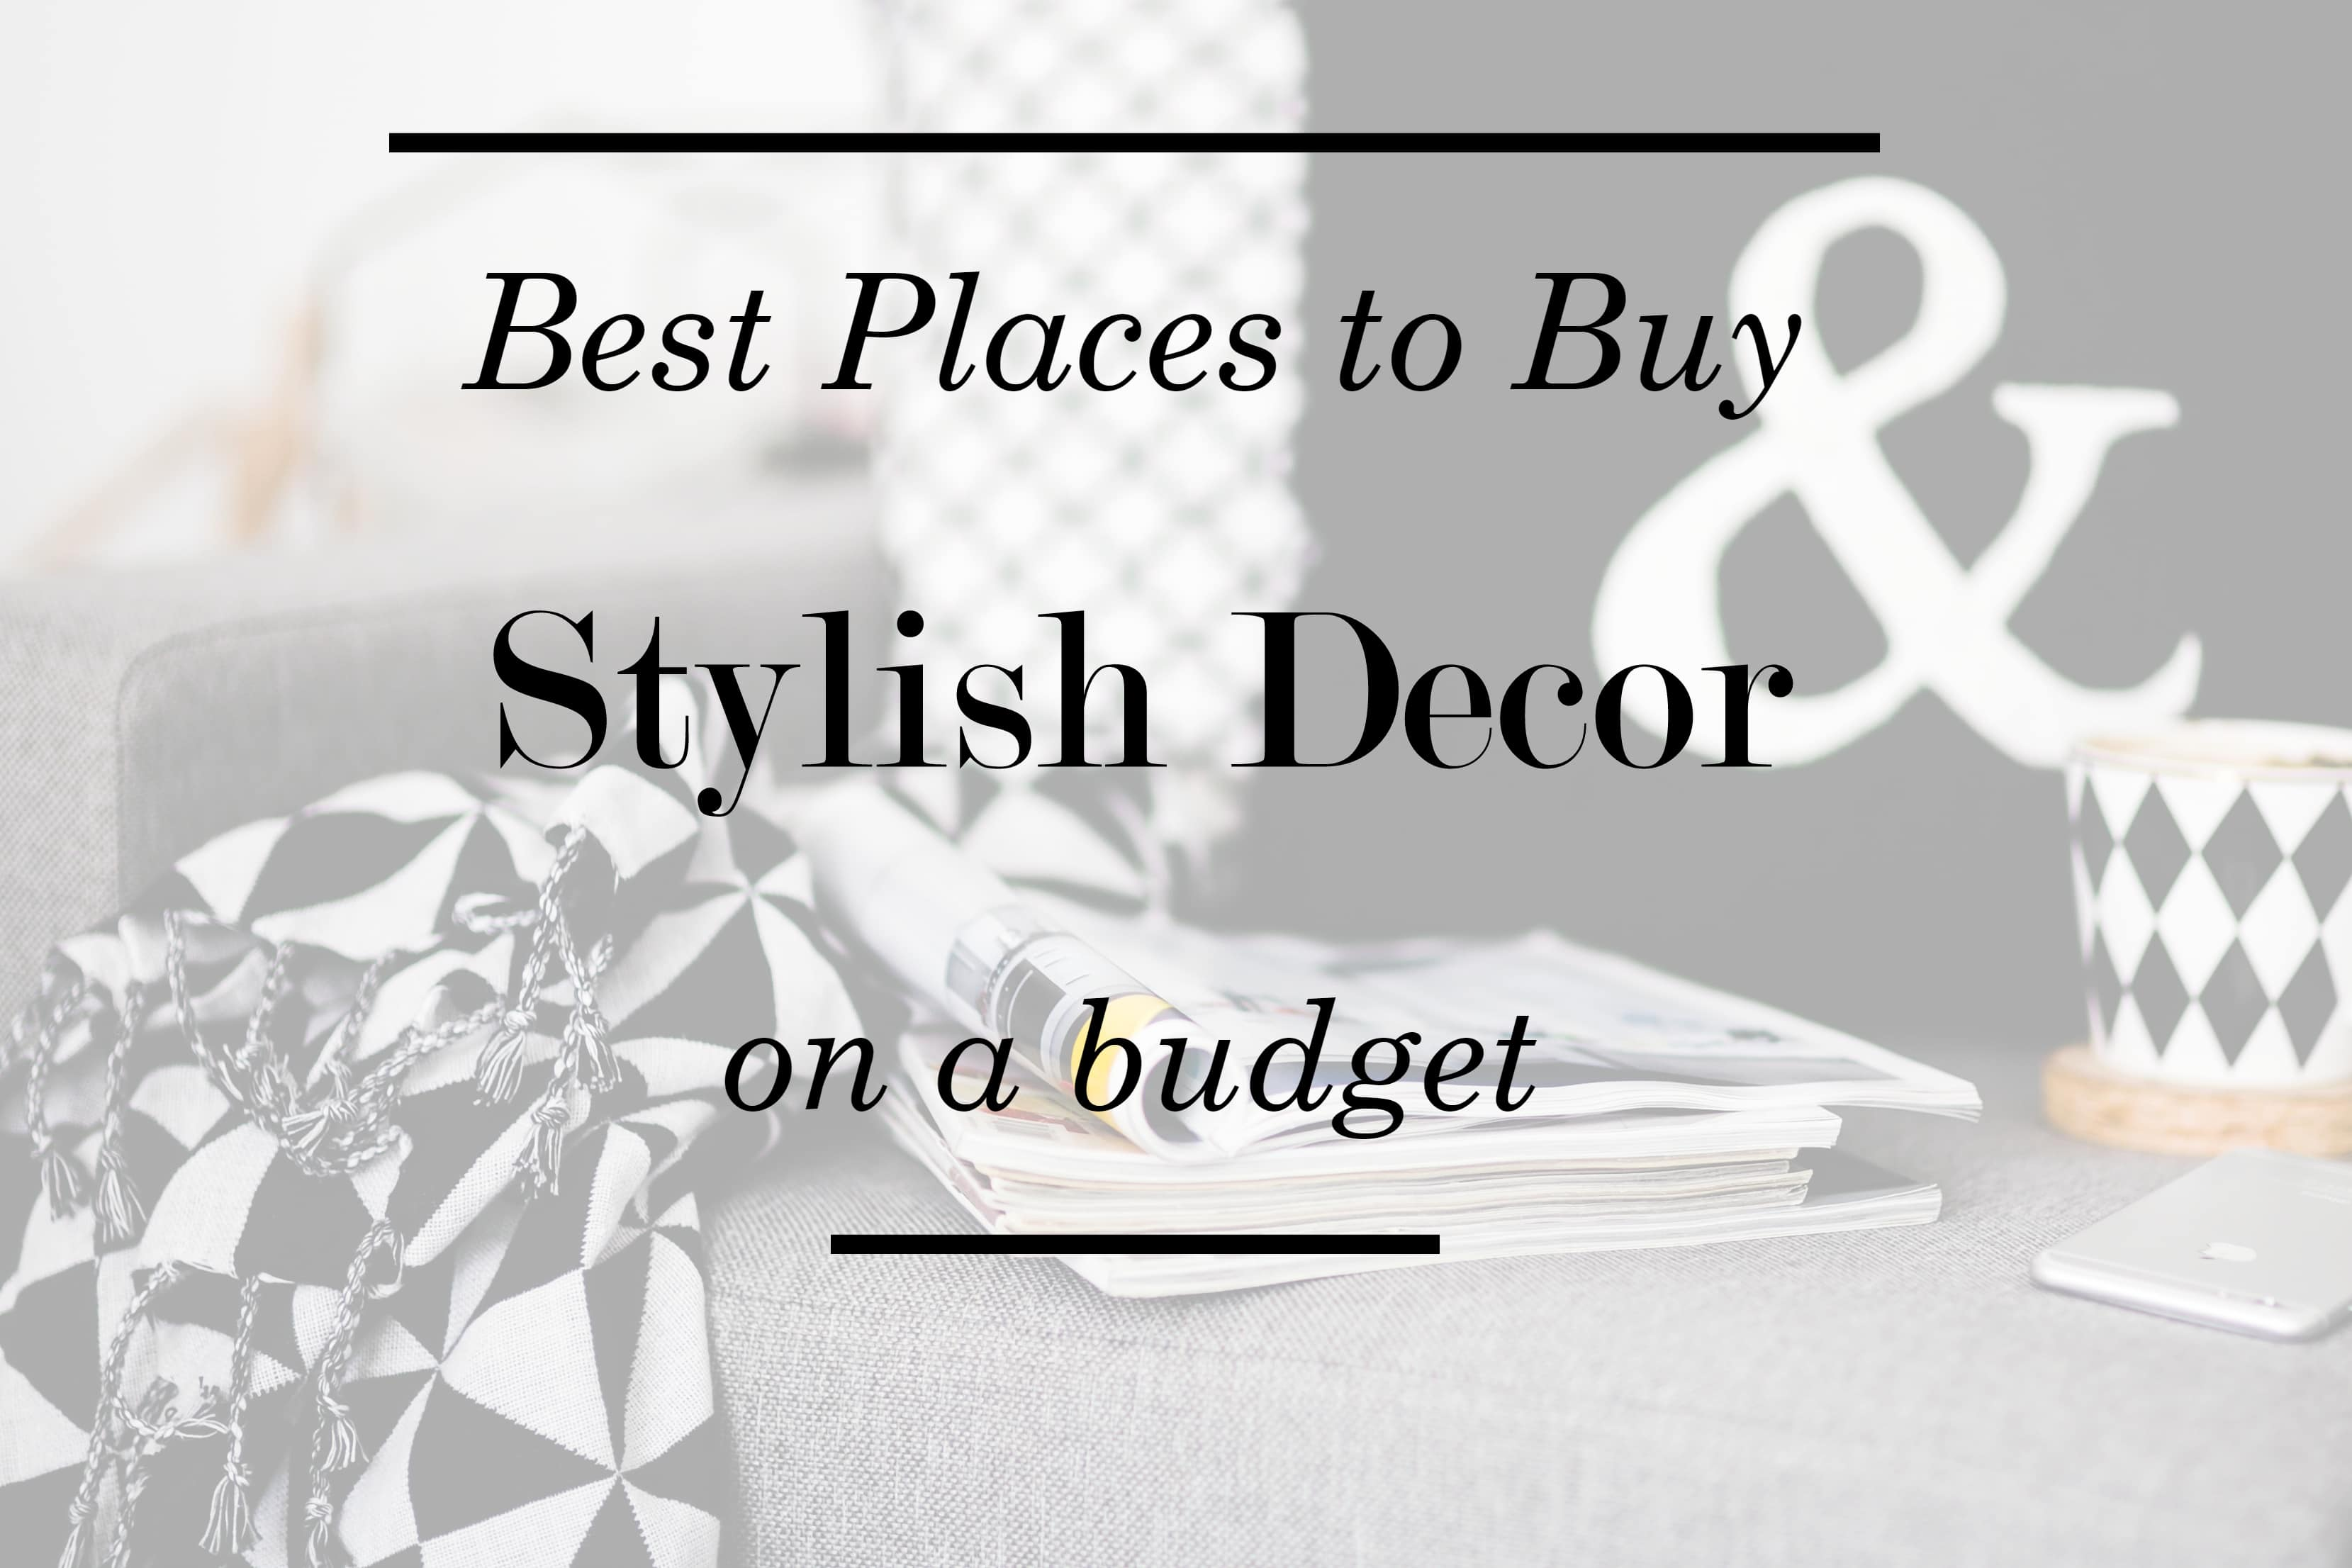 Get Your Free Decorating Guide Best Places To Buy Stylish Decor On A Budget